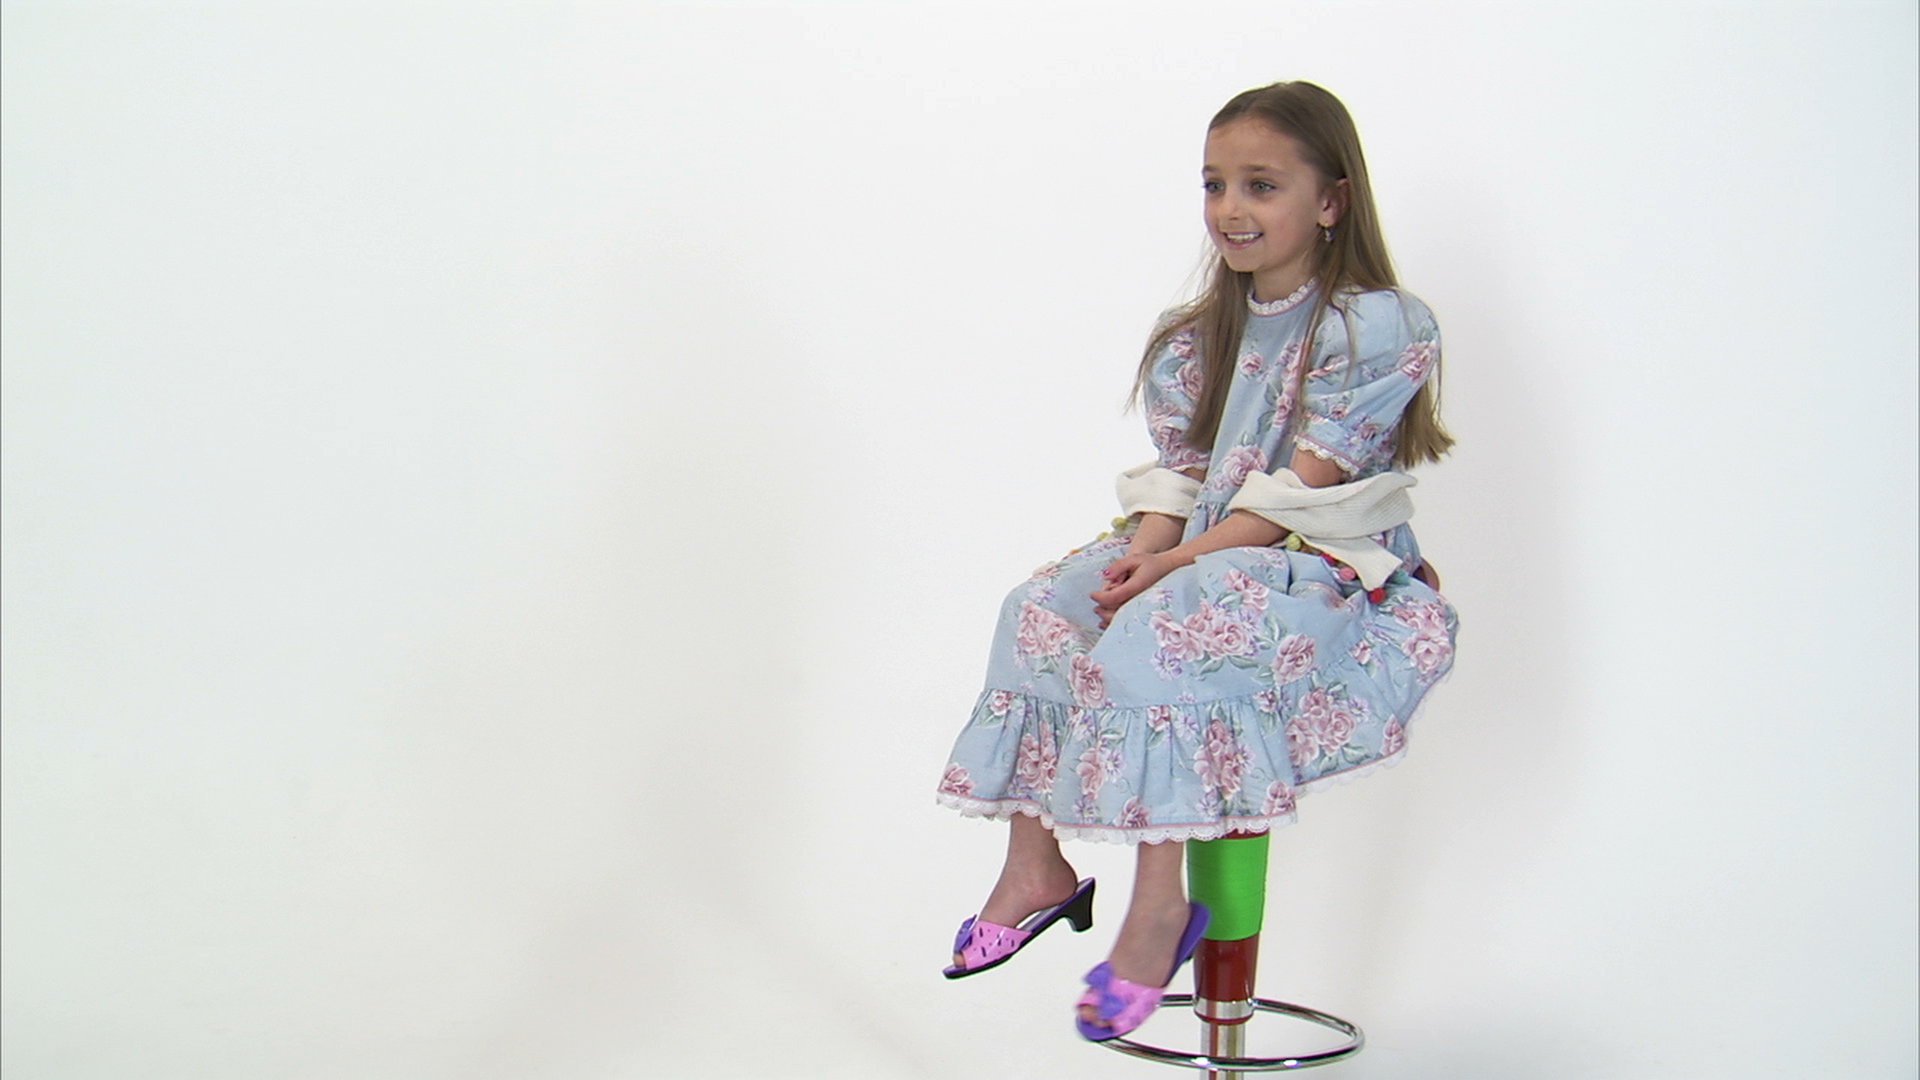 Little Girl Playing On Tall Chair And Kicking Off Shoes